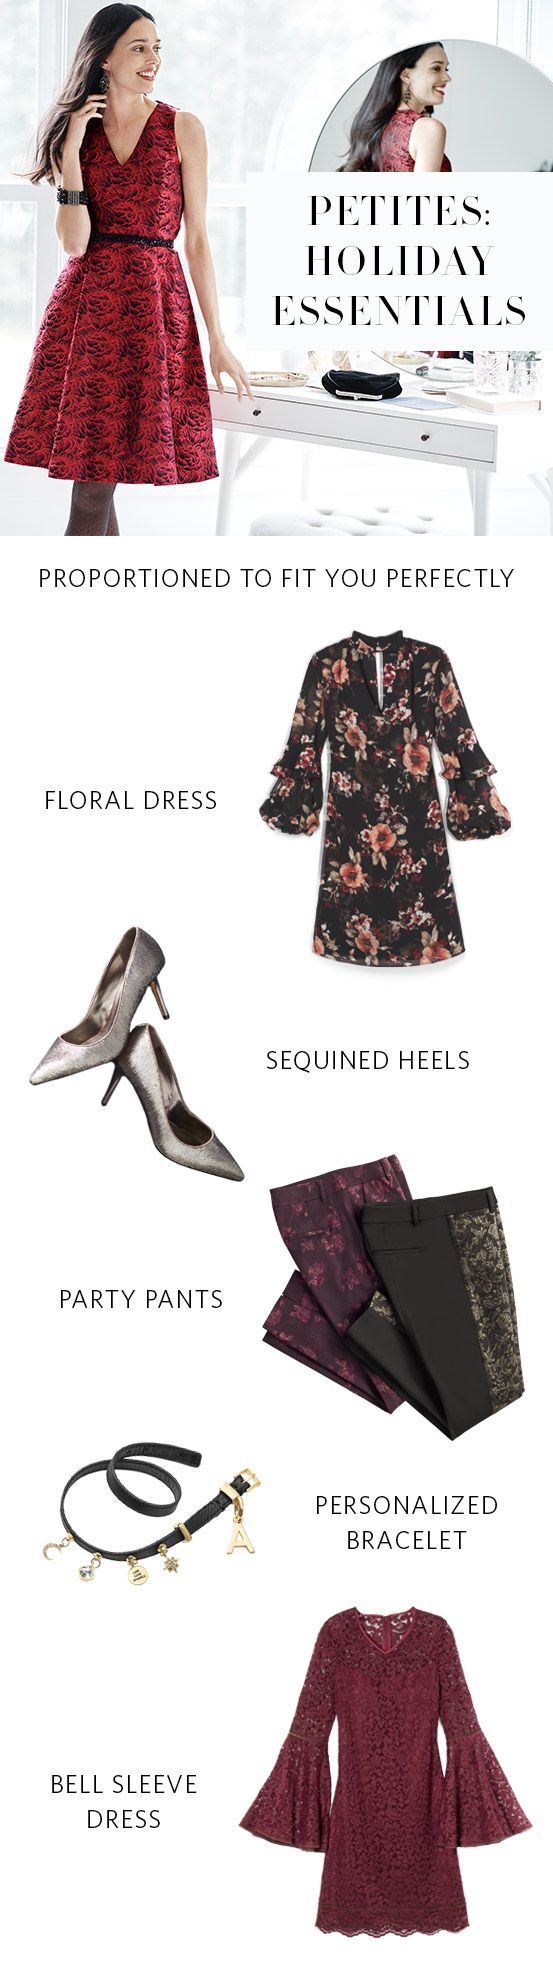 The invites are filling your holiday social calendar, and that means one thing: Time to shop (Petite) looks fit for each occasion. From festive dresses to party pants our Petites collection is proportioned to fit you (and the occasion) perfectly. Try It On, On Us: Enjoy Free Shipping & Returns on full-price Petite orders. | White House Black Market